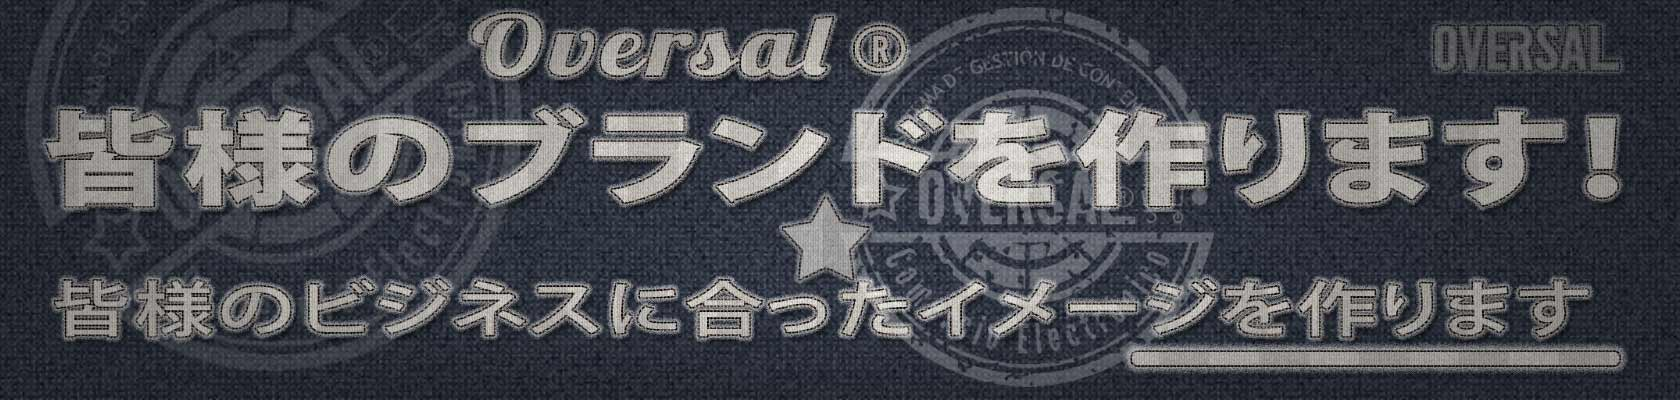 Fabric japanese text with seal graphic - 応答Webデザイン - eコマース  - Oversal